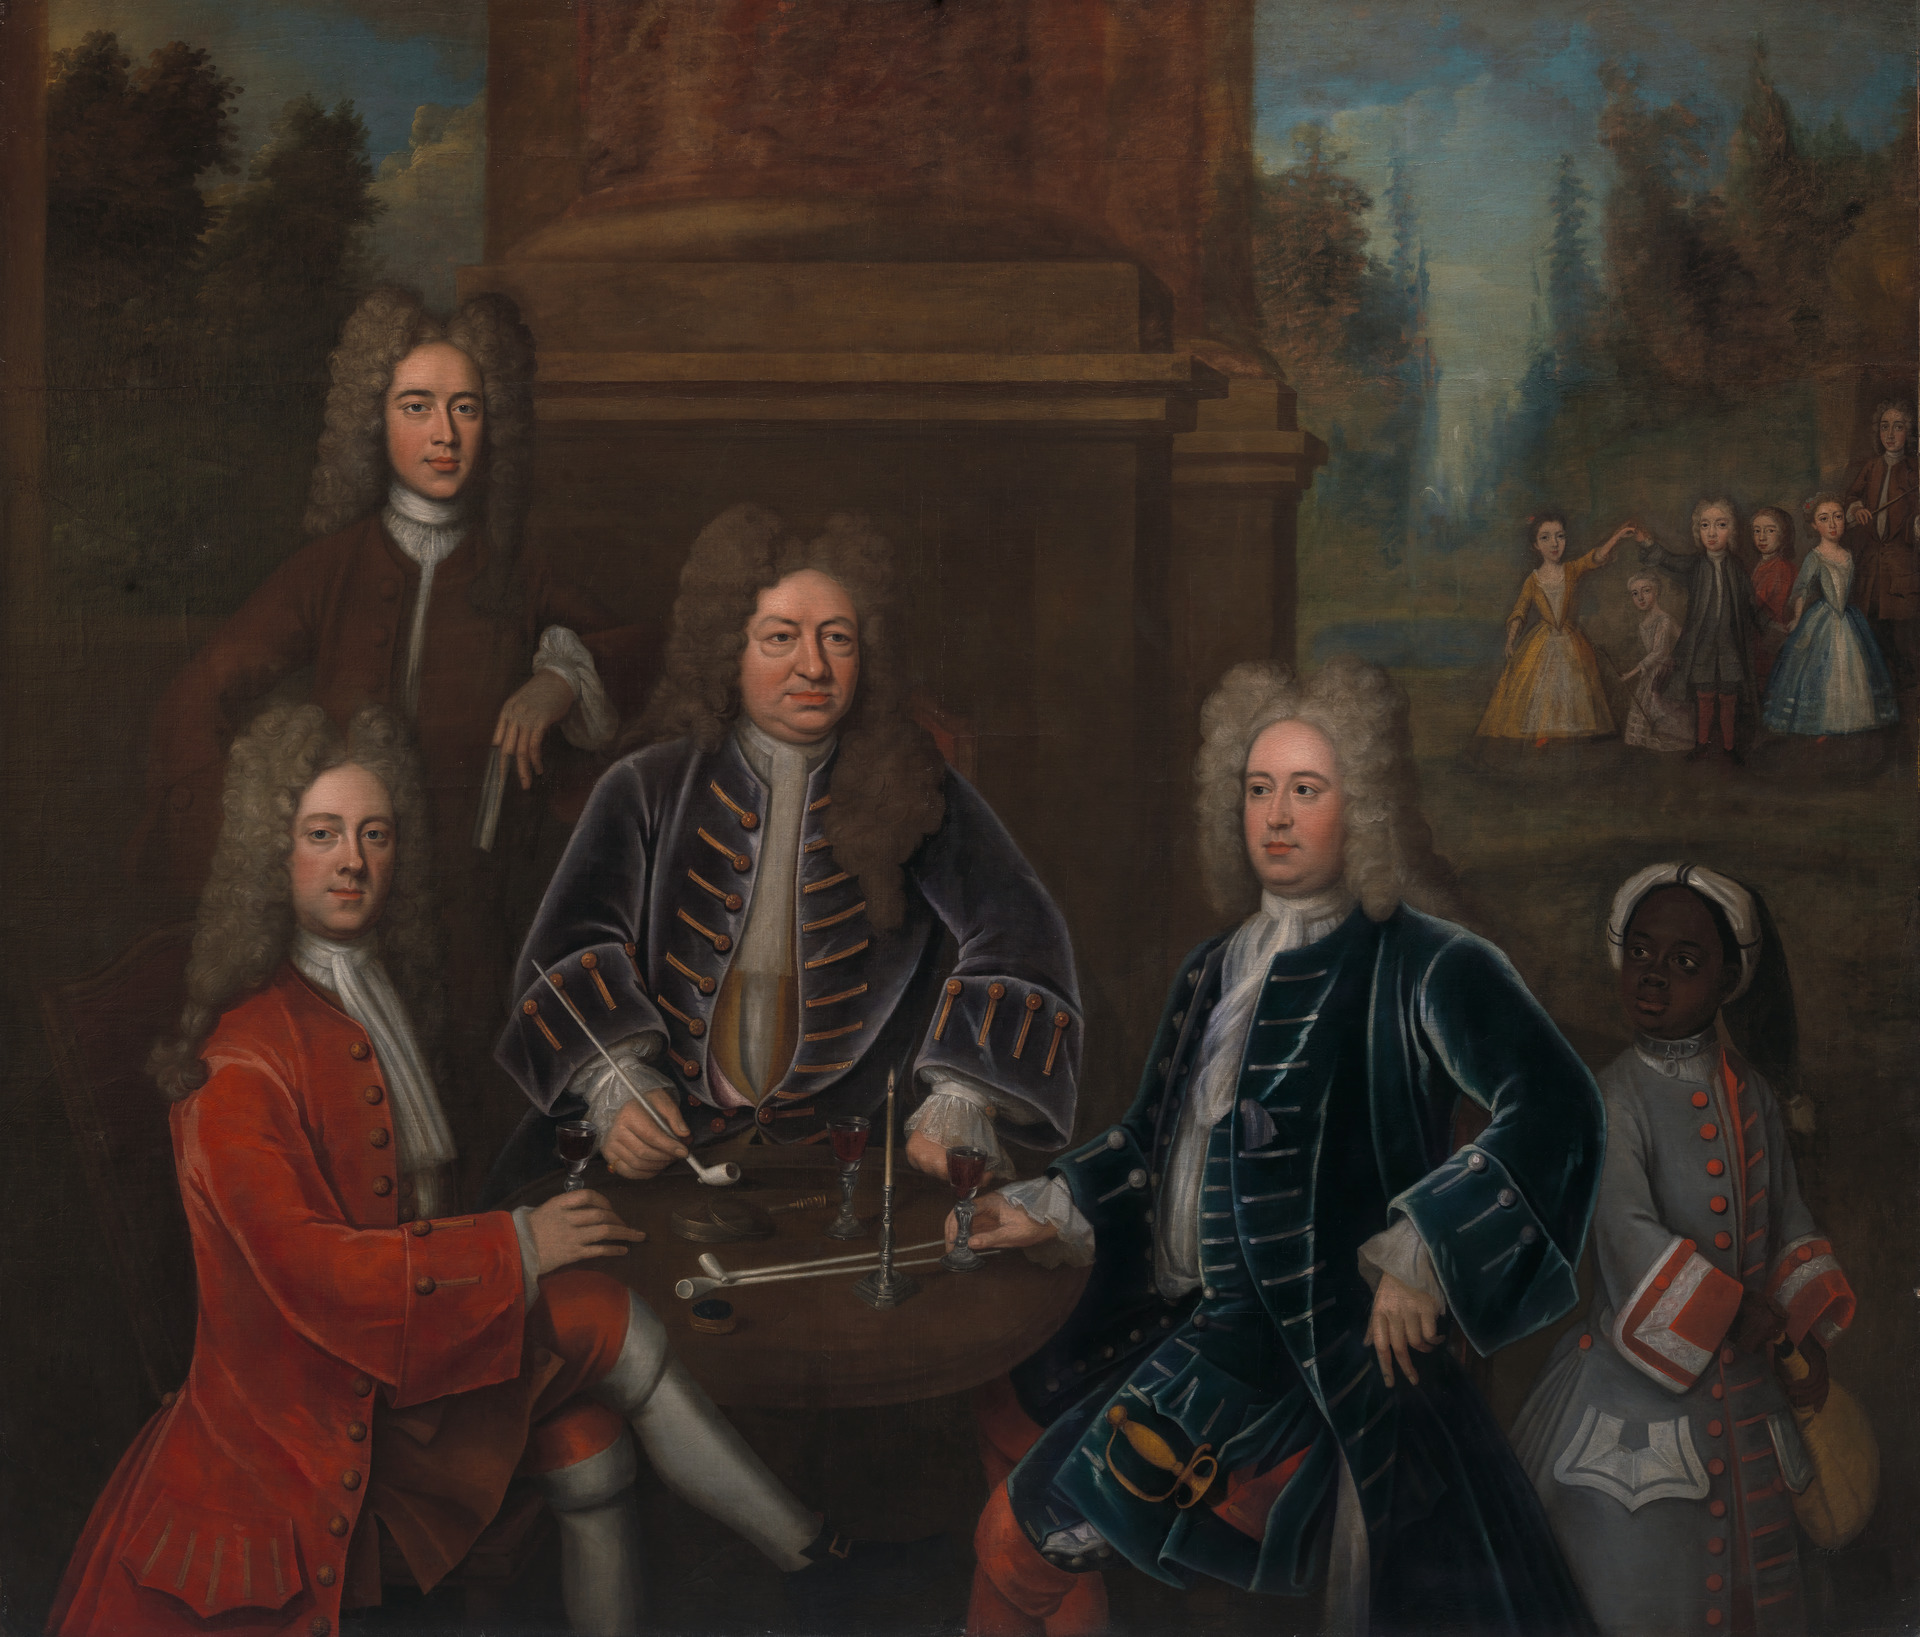 Elihu Yale (seated center); William Cavendish, the second Duke of Devonshire; Lord James Cavendish; Mr. Tunstal; and an Enslaved Servant.  Credit: Yale Center for British Art, Gift of Andrew Cavendish, eleventh Duke of Devonshire.